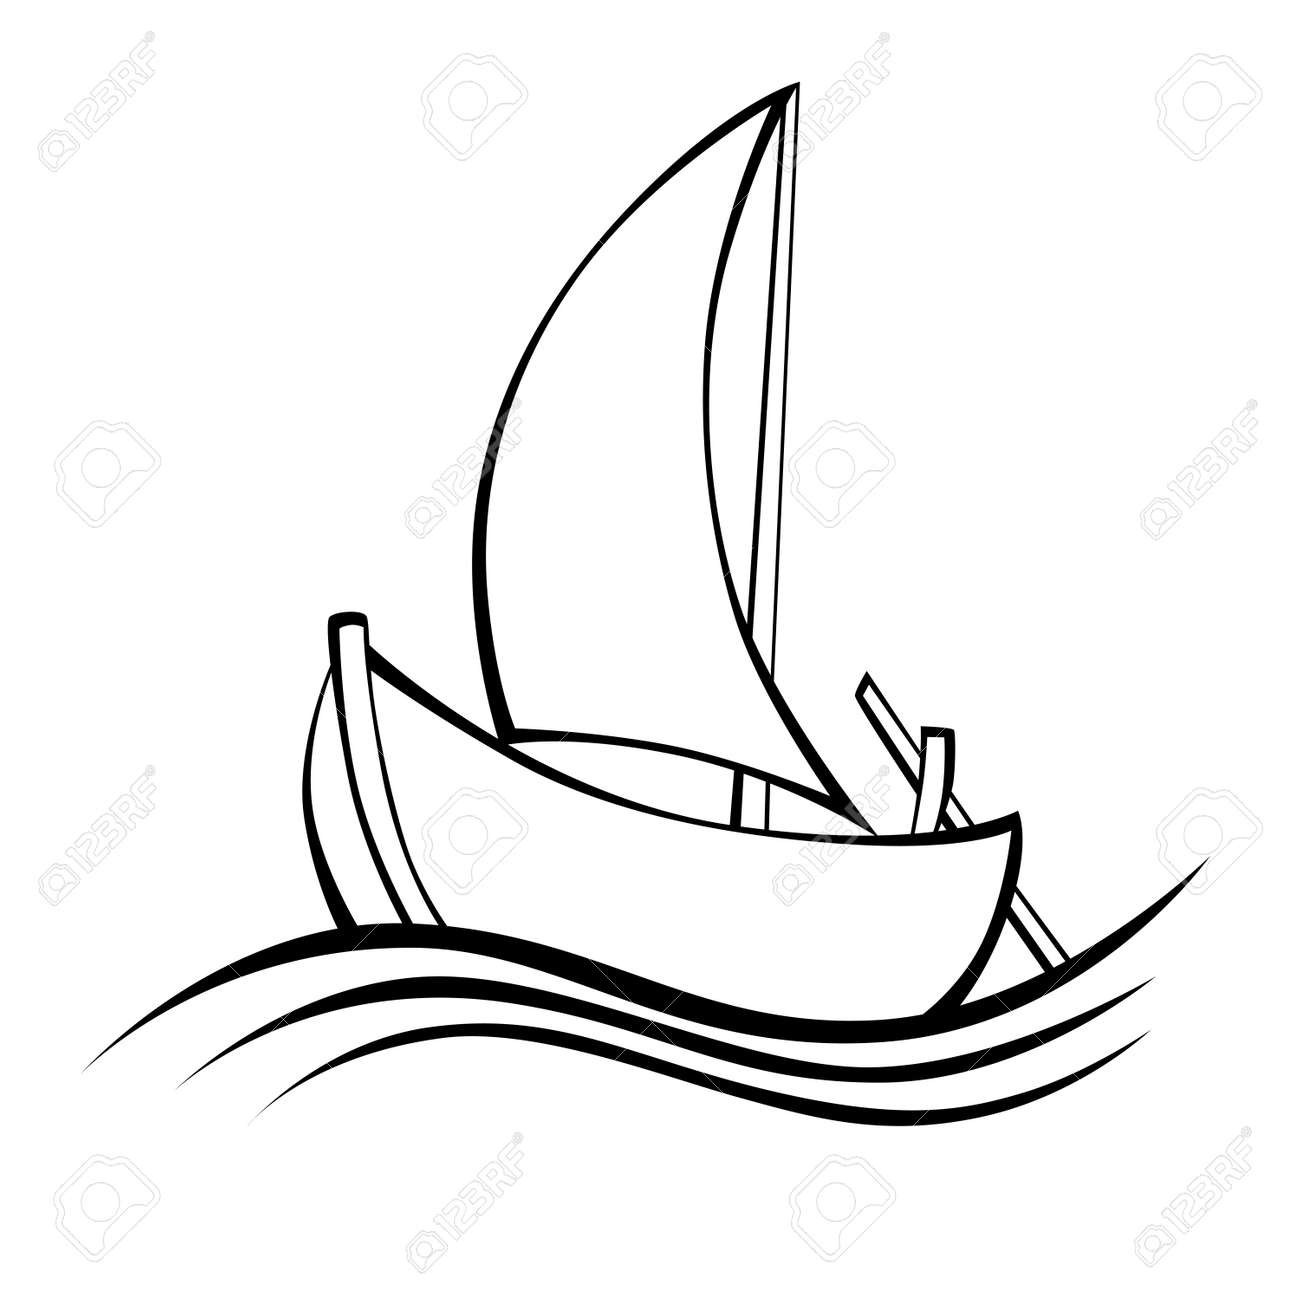 Sailing Boat Black White Isolated Object Illustration Stock Vector